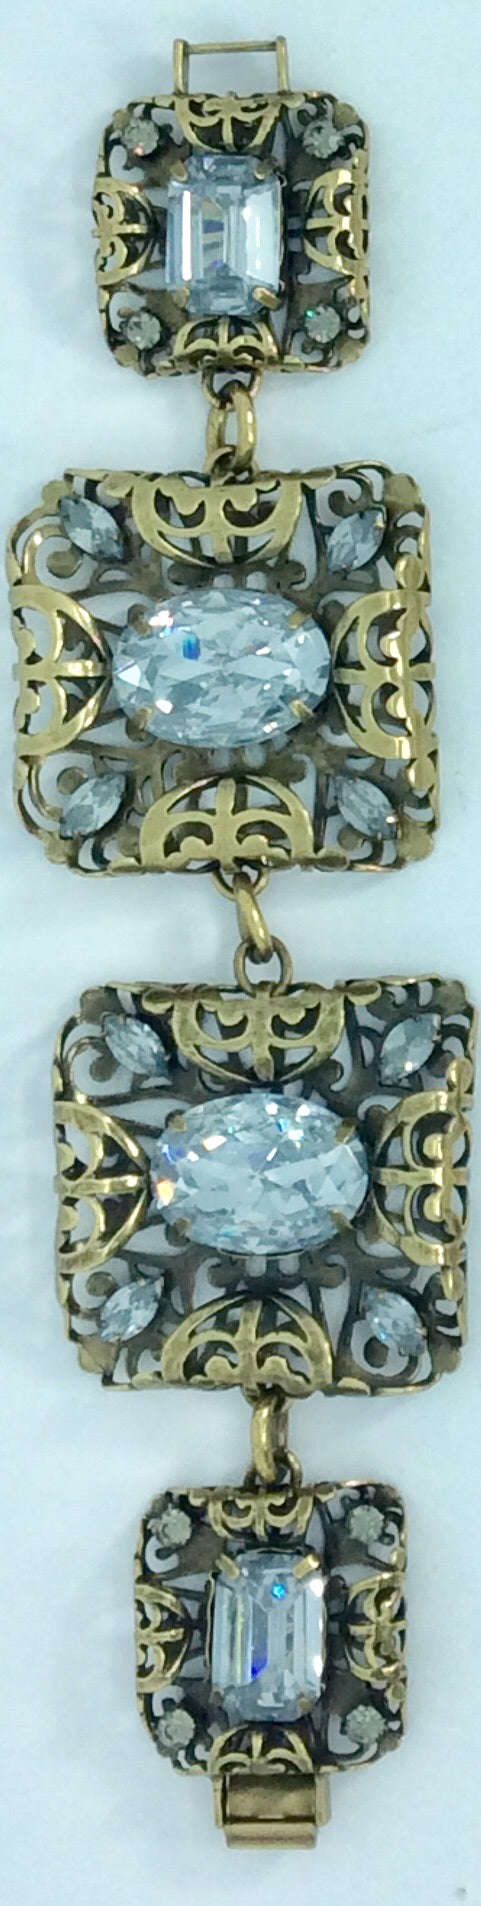 Italian Bronze filigree work with large crystal pieces bracelet